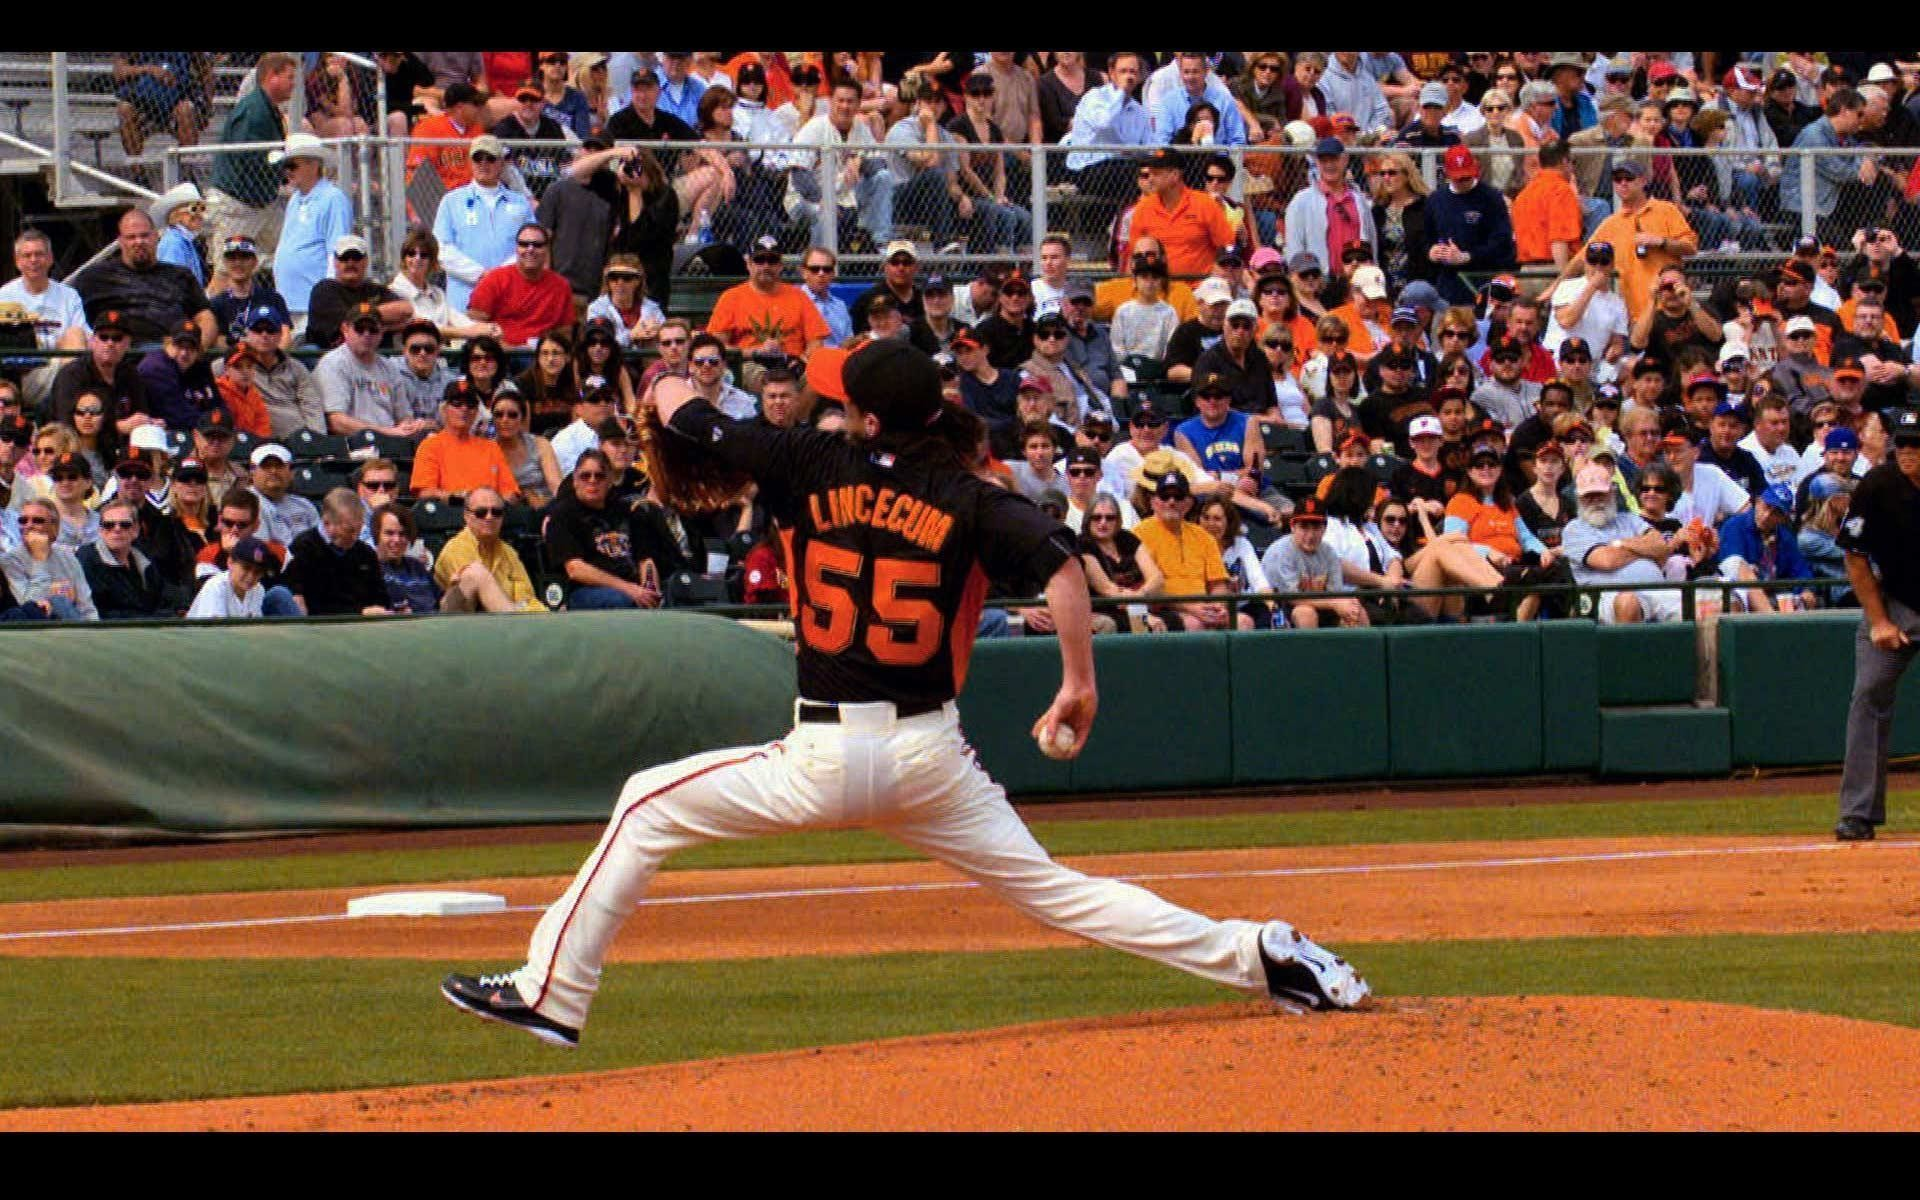 The gallery for –> Buster Posey Desktop Wallpaper